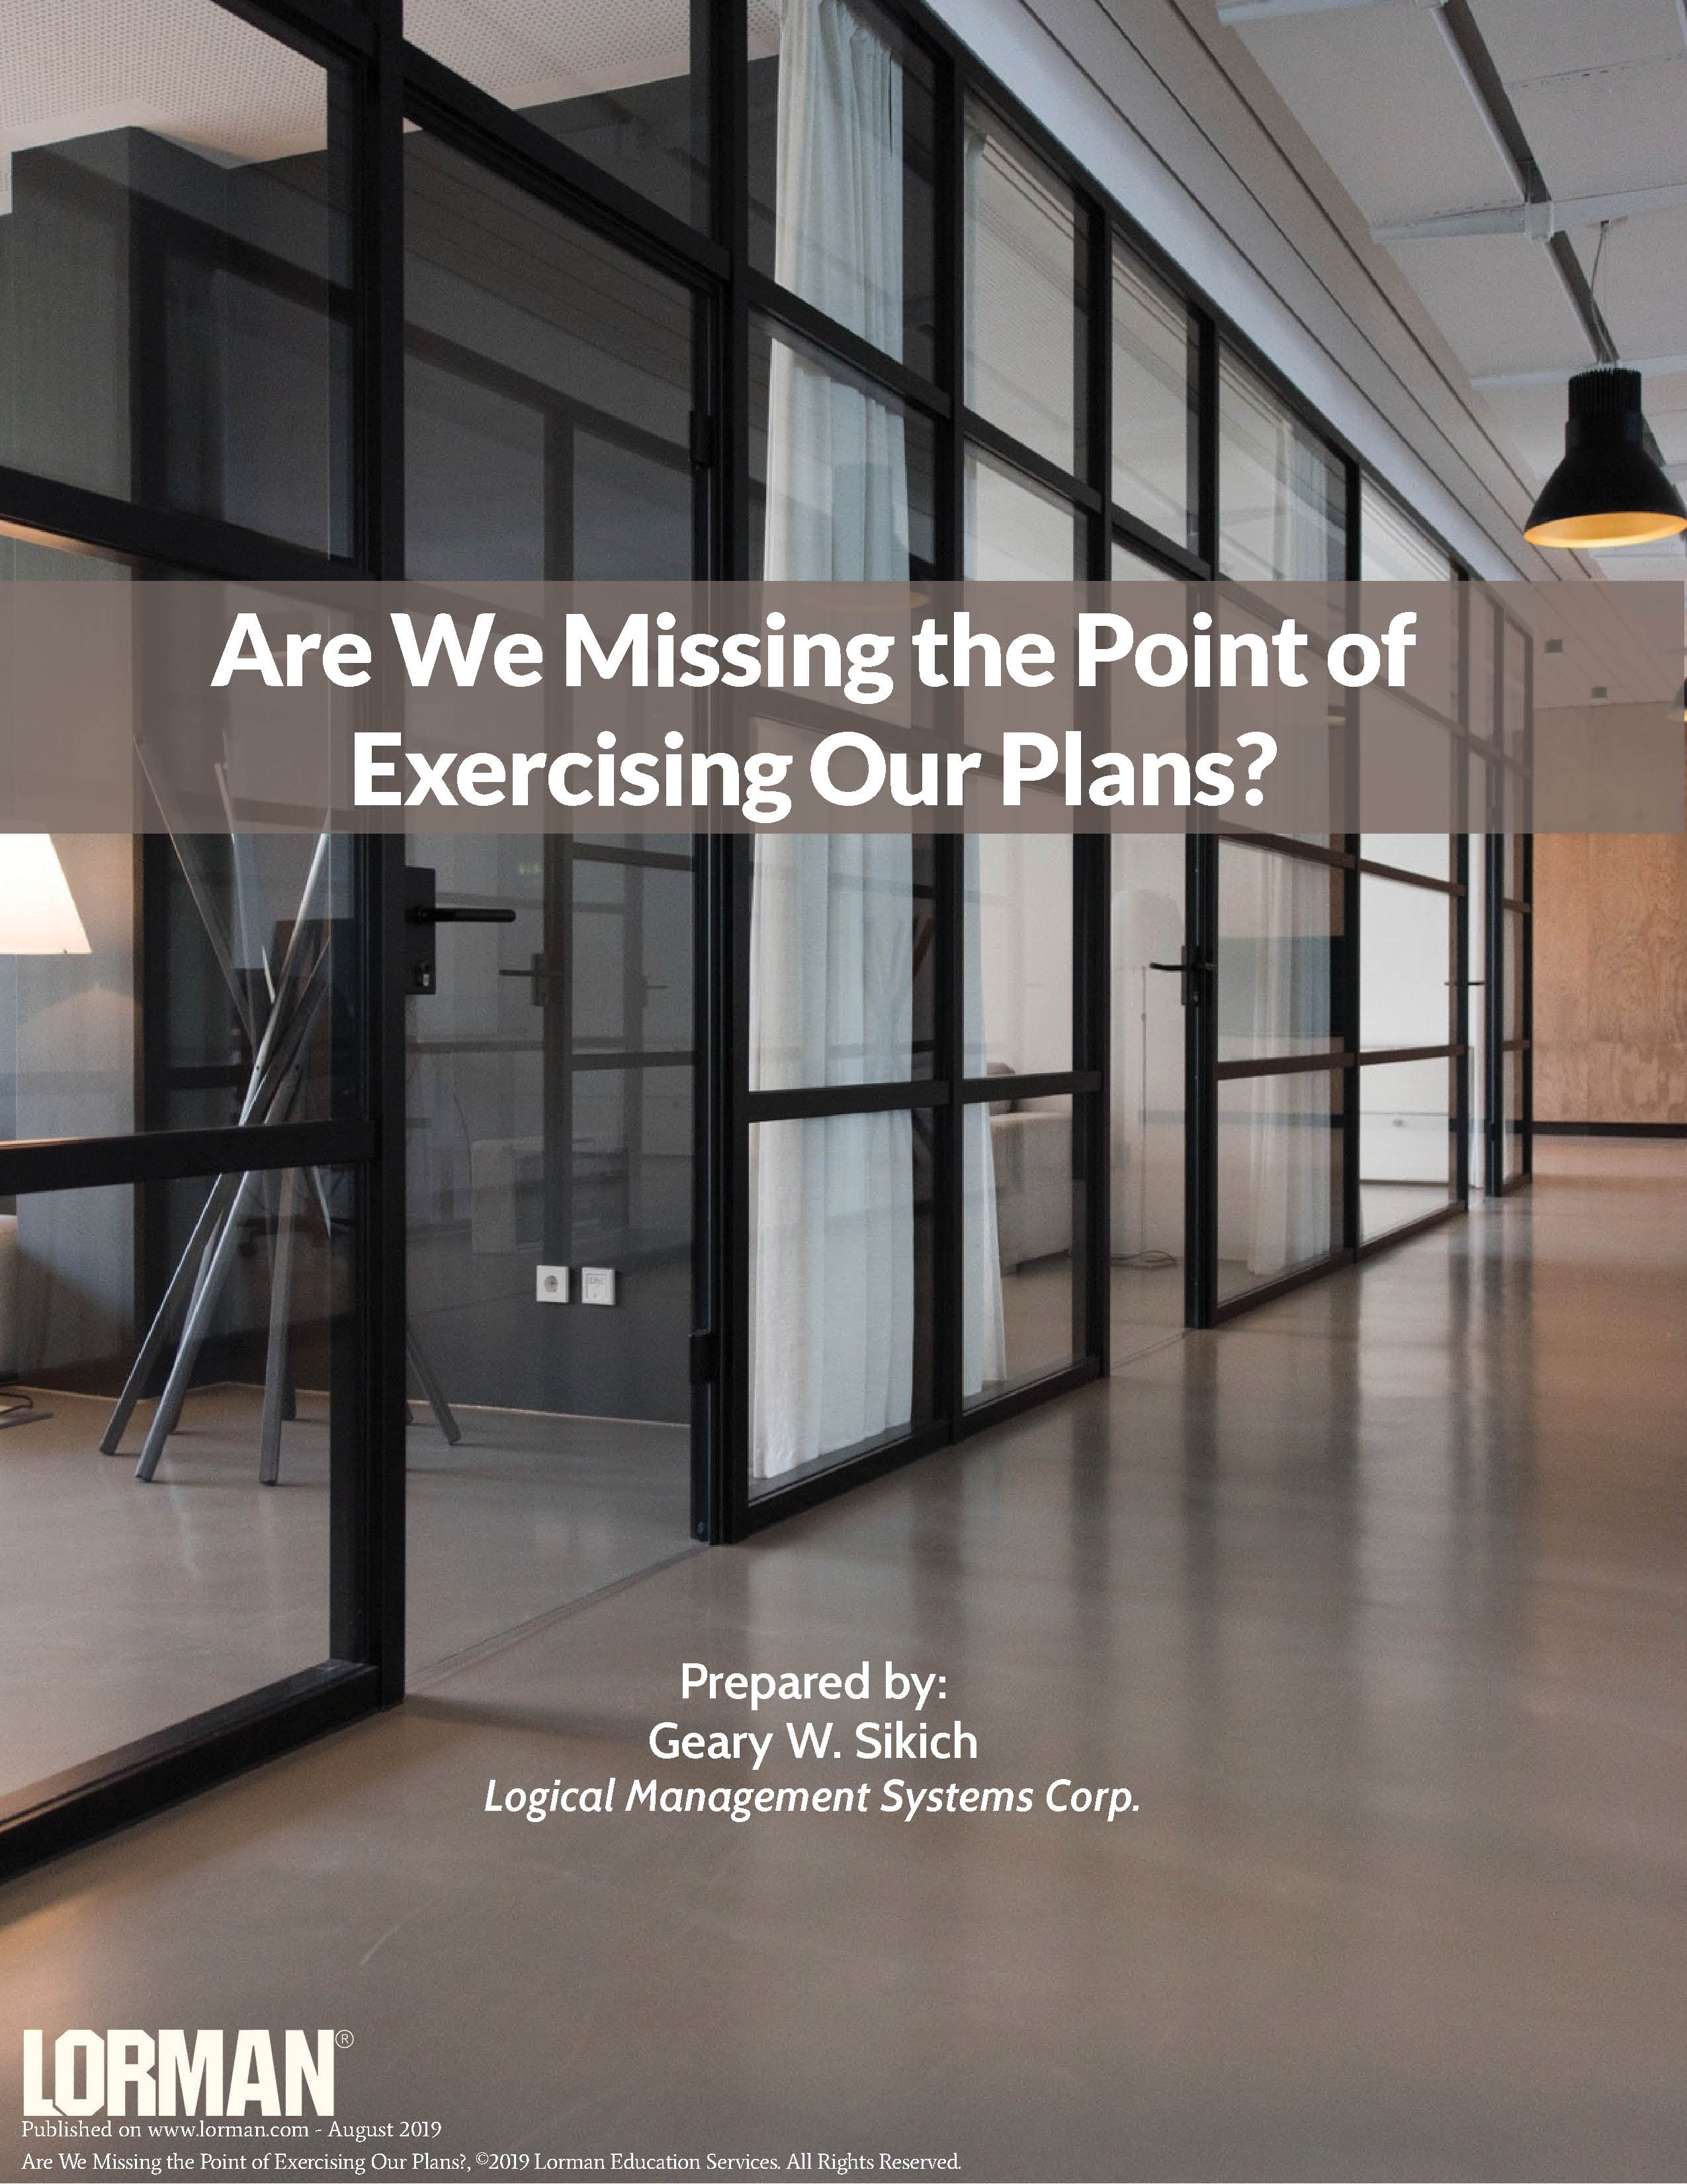 Are We Missing the Point of Exercising Our Plans?